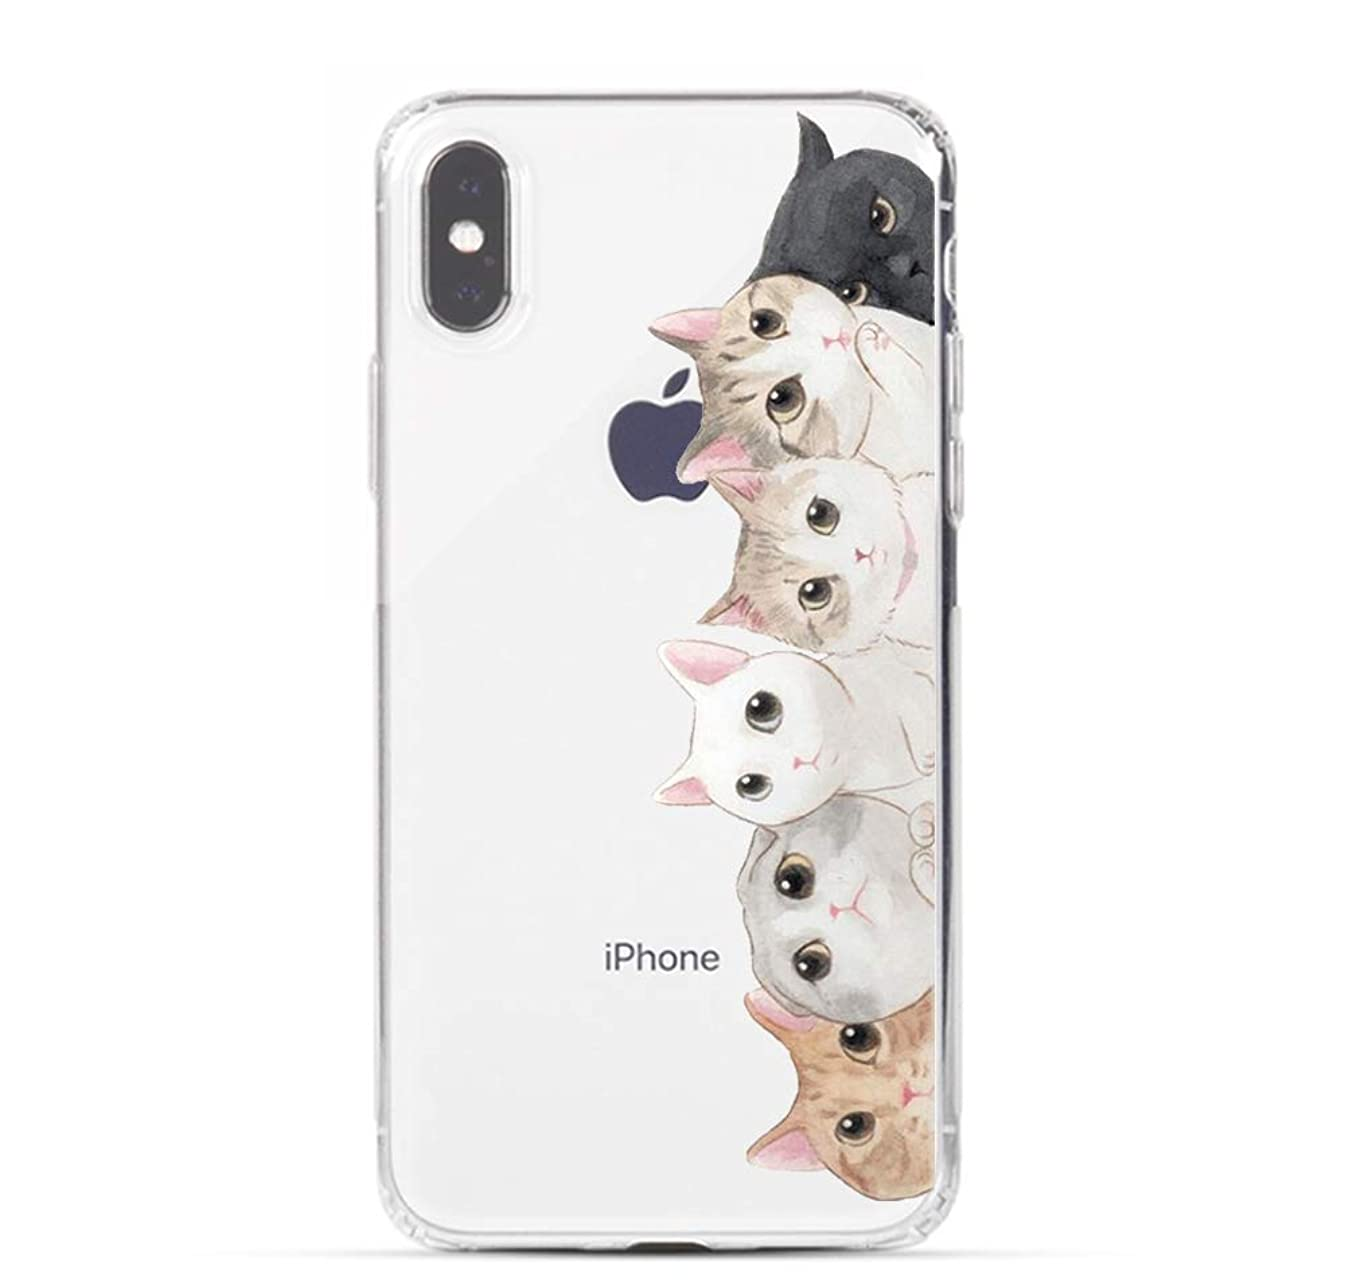 HUIYCUU Case Compatible with iPhone Xs Max Case, Funny Cats Design Slim Fit Soft TPU Protective Shell Cute Black Animal Pattern Clear Novelty Bumper Back Cover for iPhone Xs Max,Orange White Cat